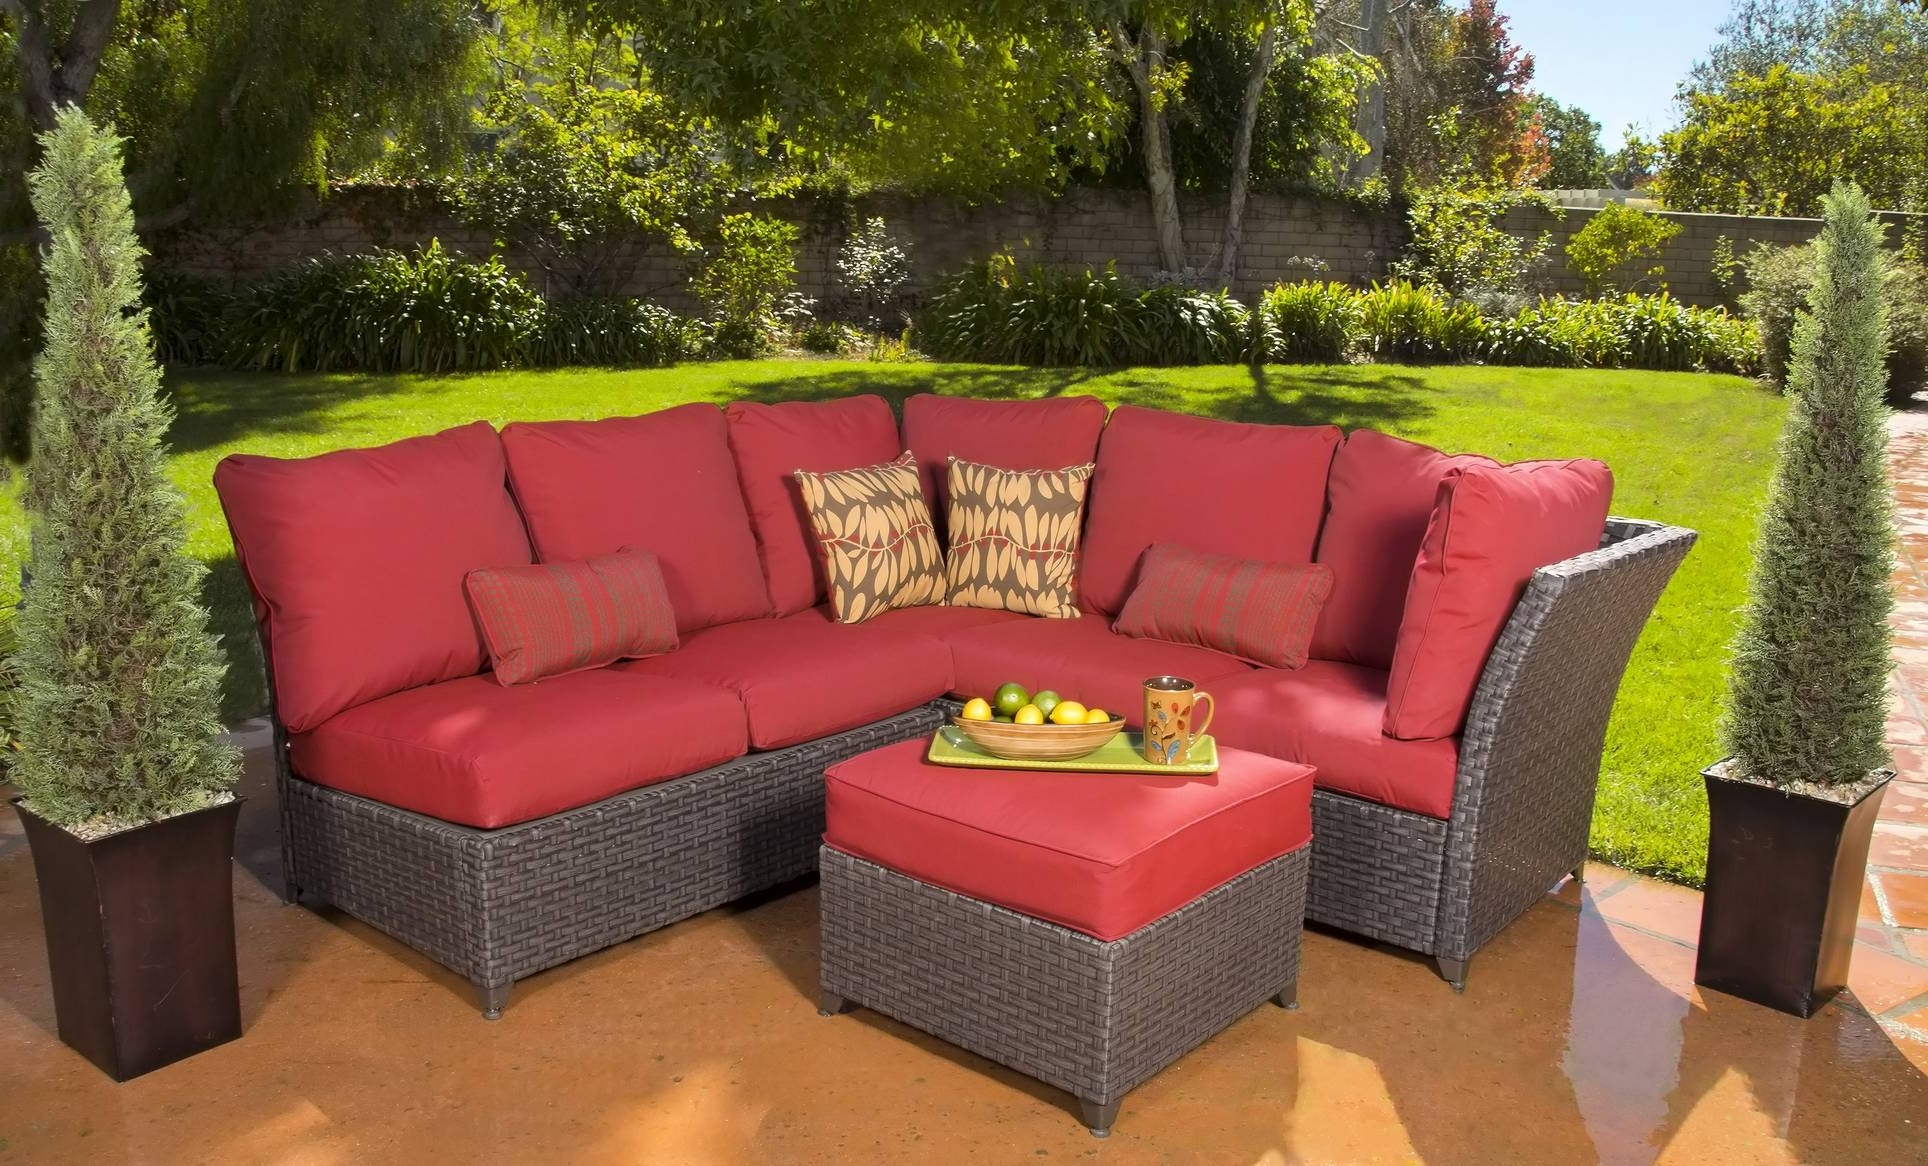 Rocking Chairs At Kroger For Current Kroger Outdoor Furniture Best Interior Wall Paint Colors Wood Patio (View 12 of 20)